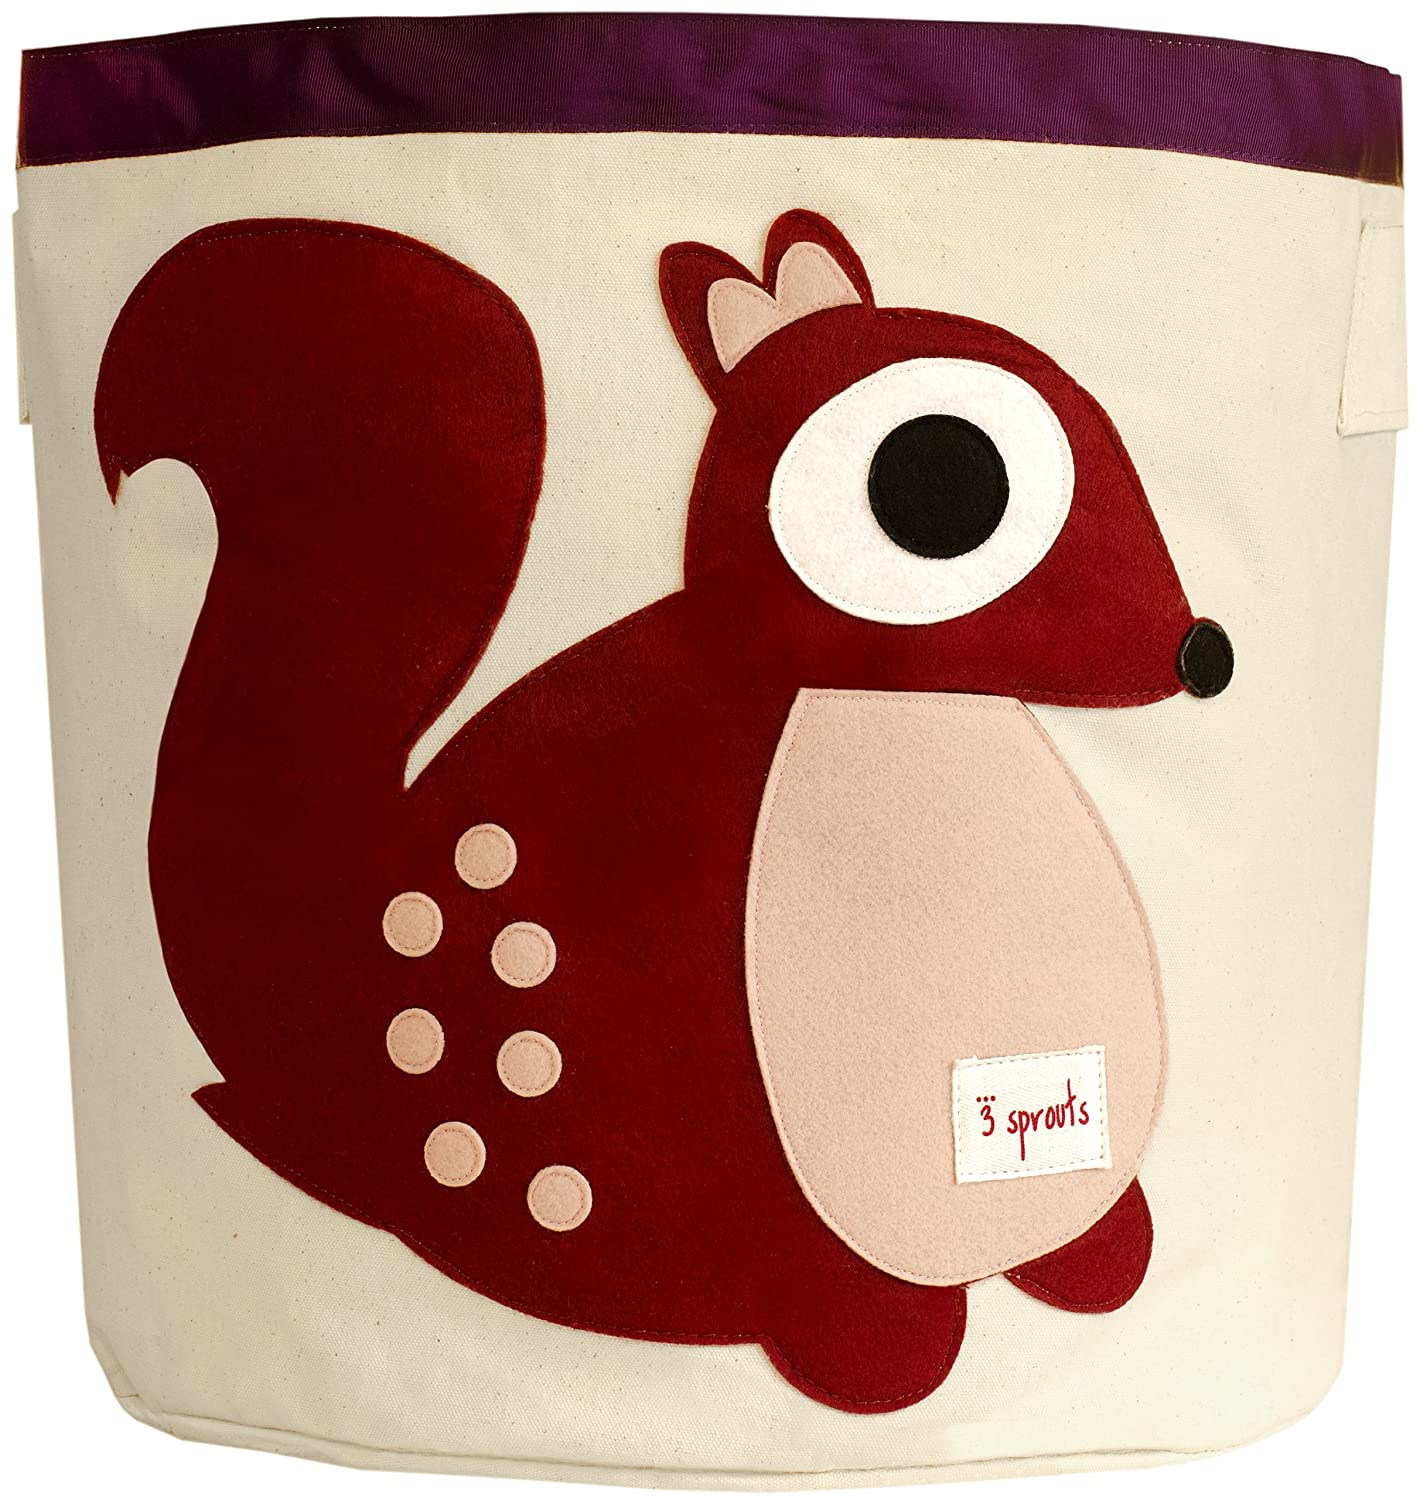 amazoncom   sprouts storage bin squirrel  nursery storage  - amazoncom   sprouts storage bin squirrel  nursery storage baskets baby